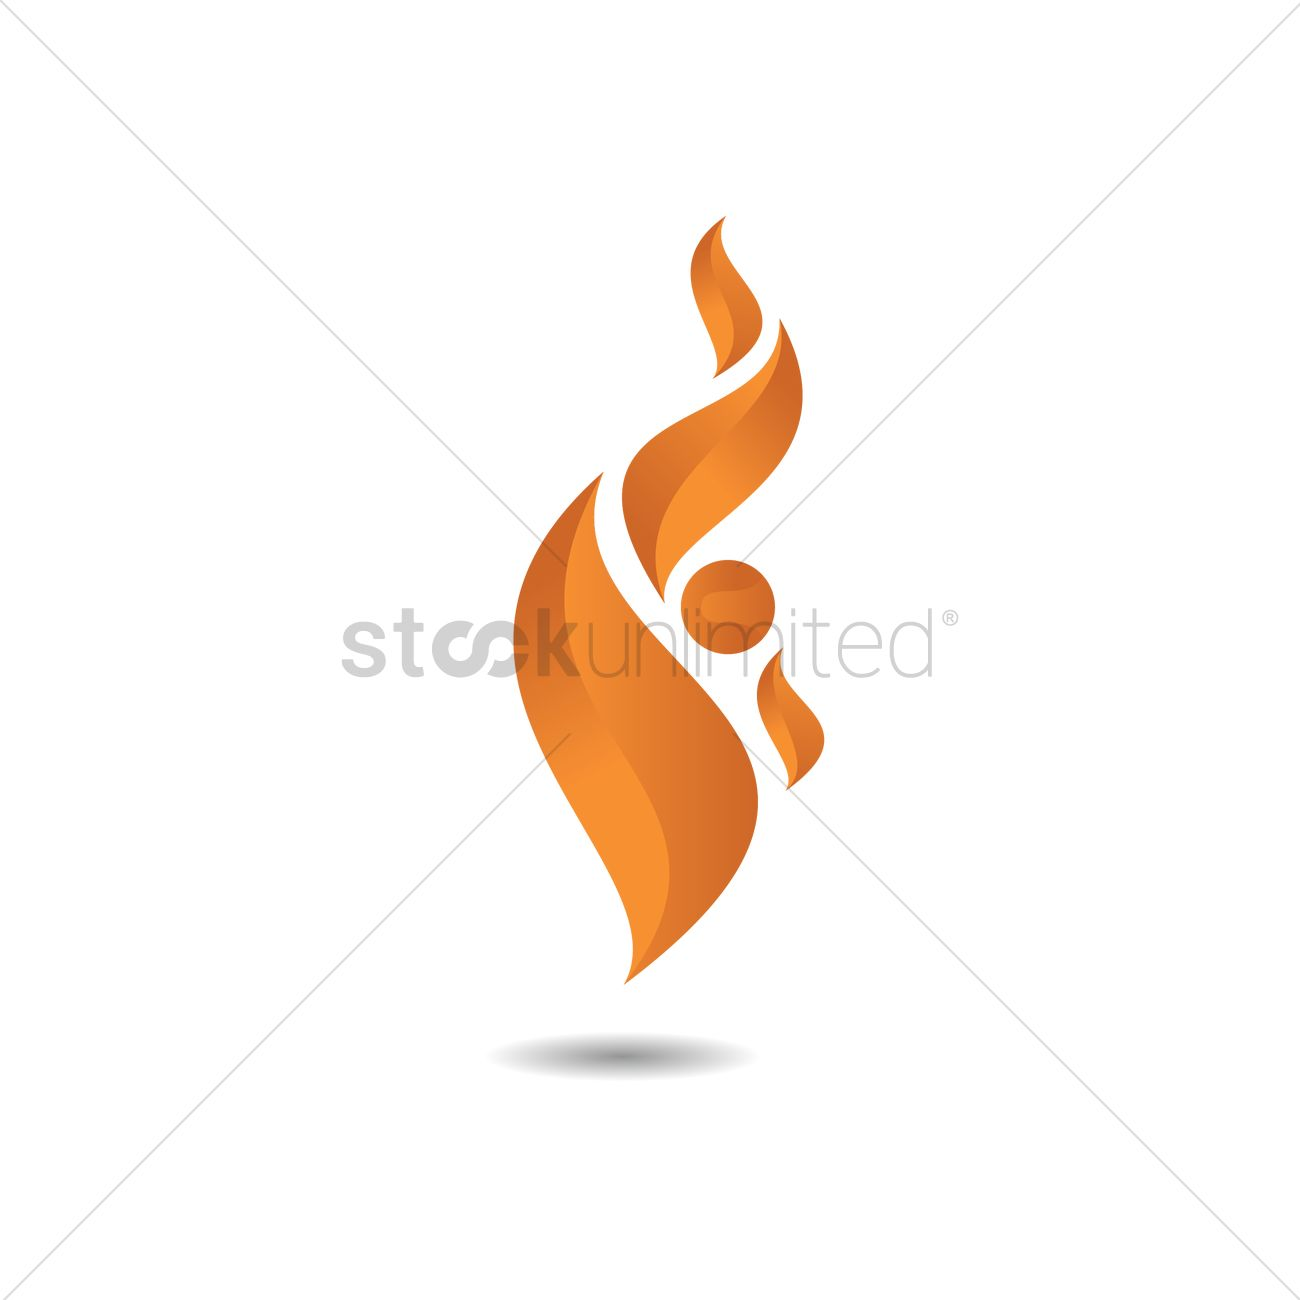 flame logo design vector image 1477172 stockunlimited